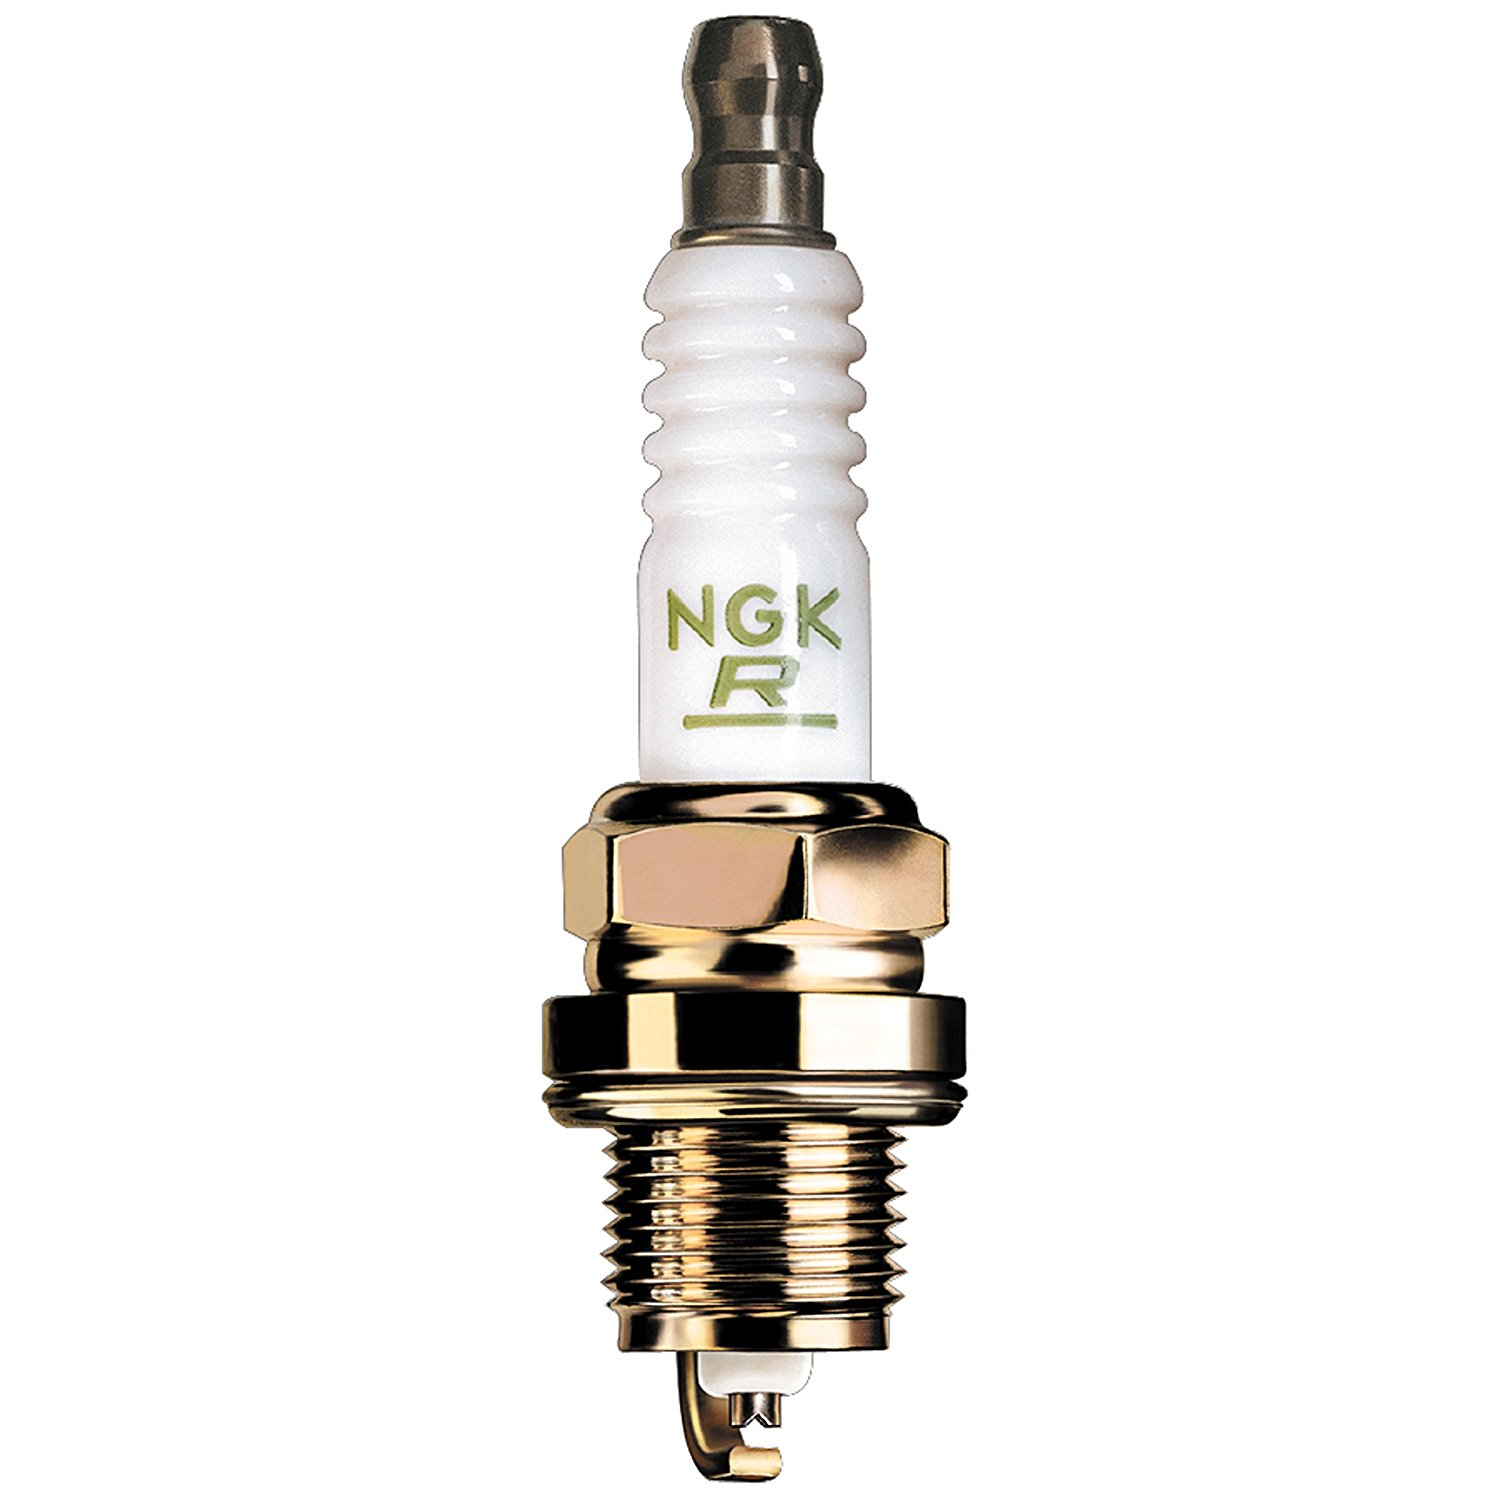 (4838) BP8H-N-10 Standard Spark Plug, Pack of 1, Ship from USA, Brand NGK by NGK Spark Plugs